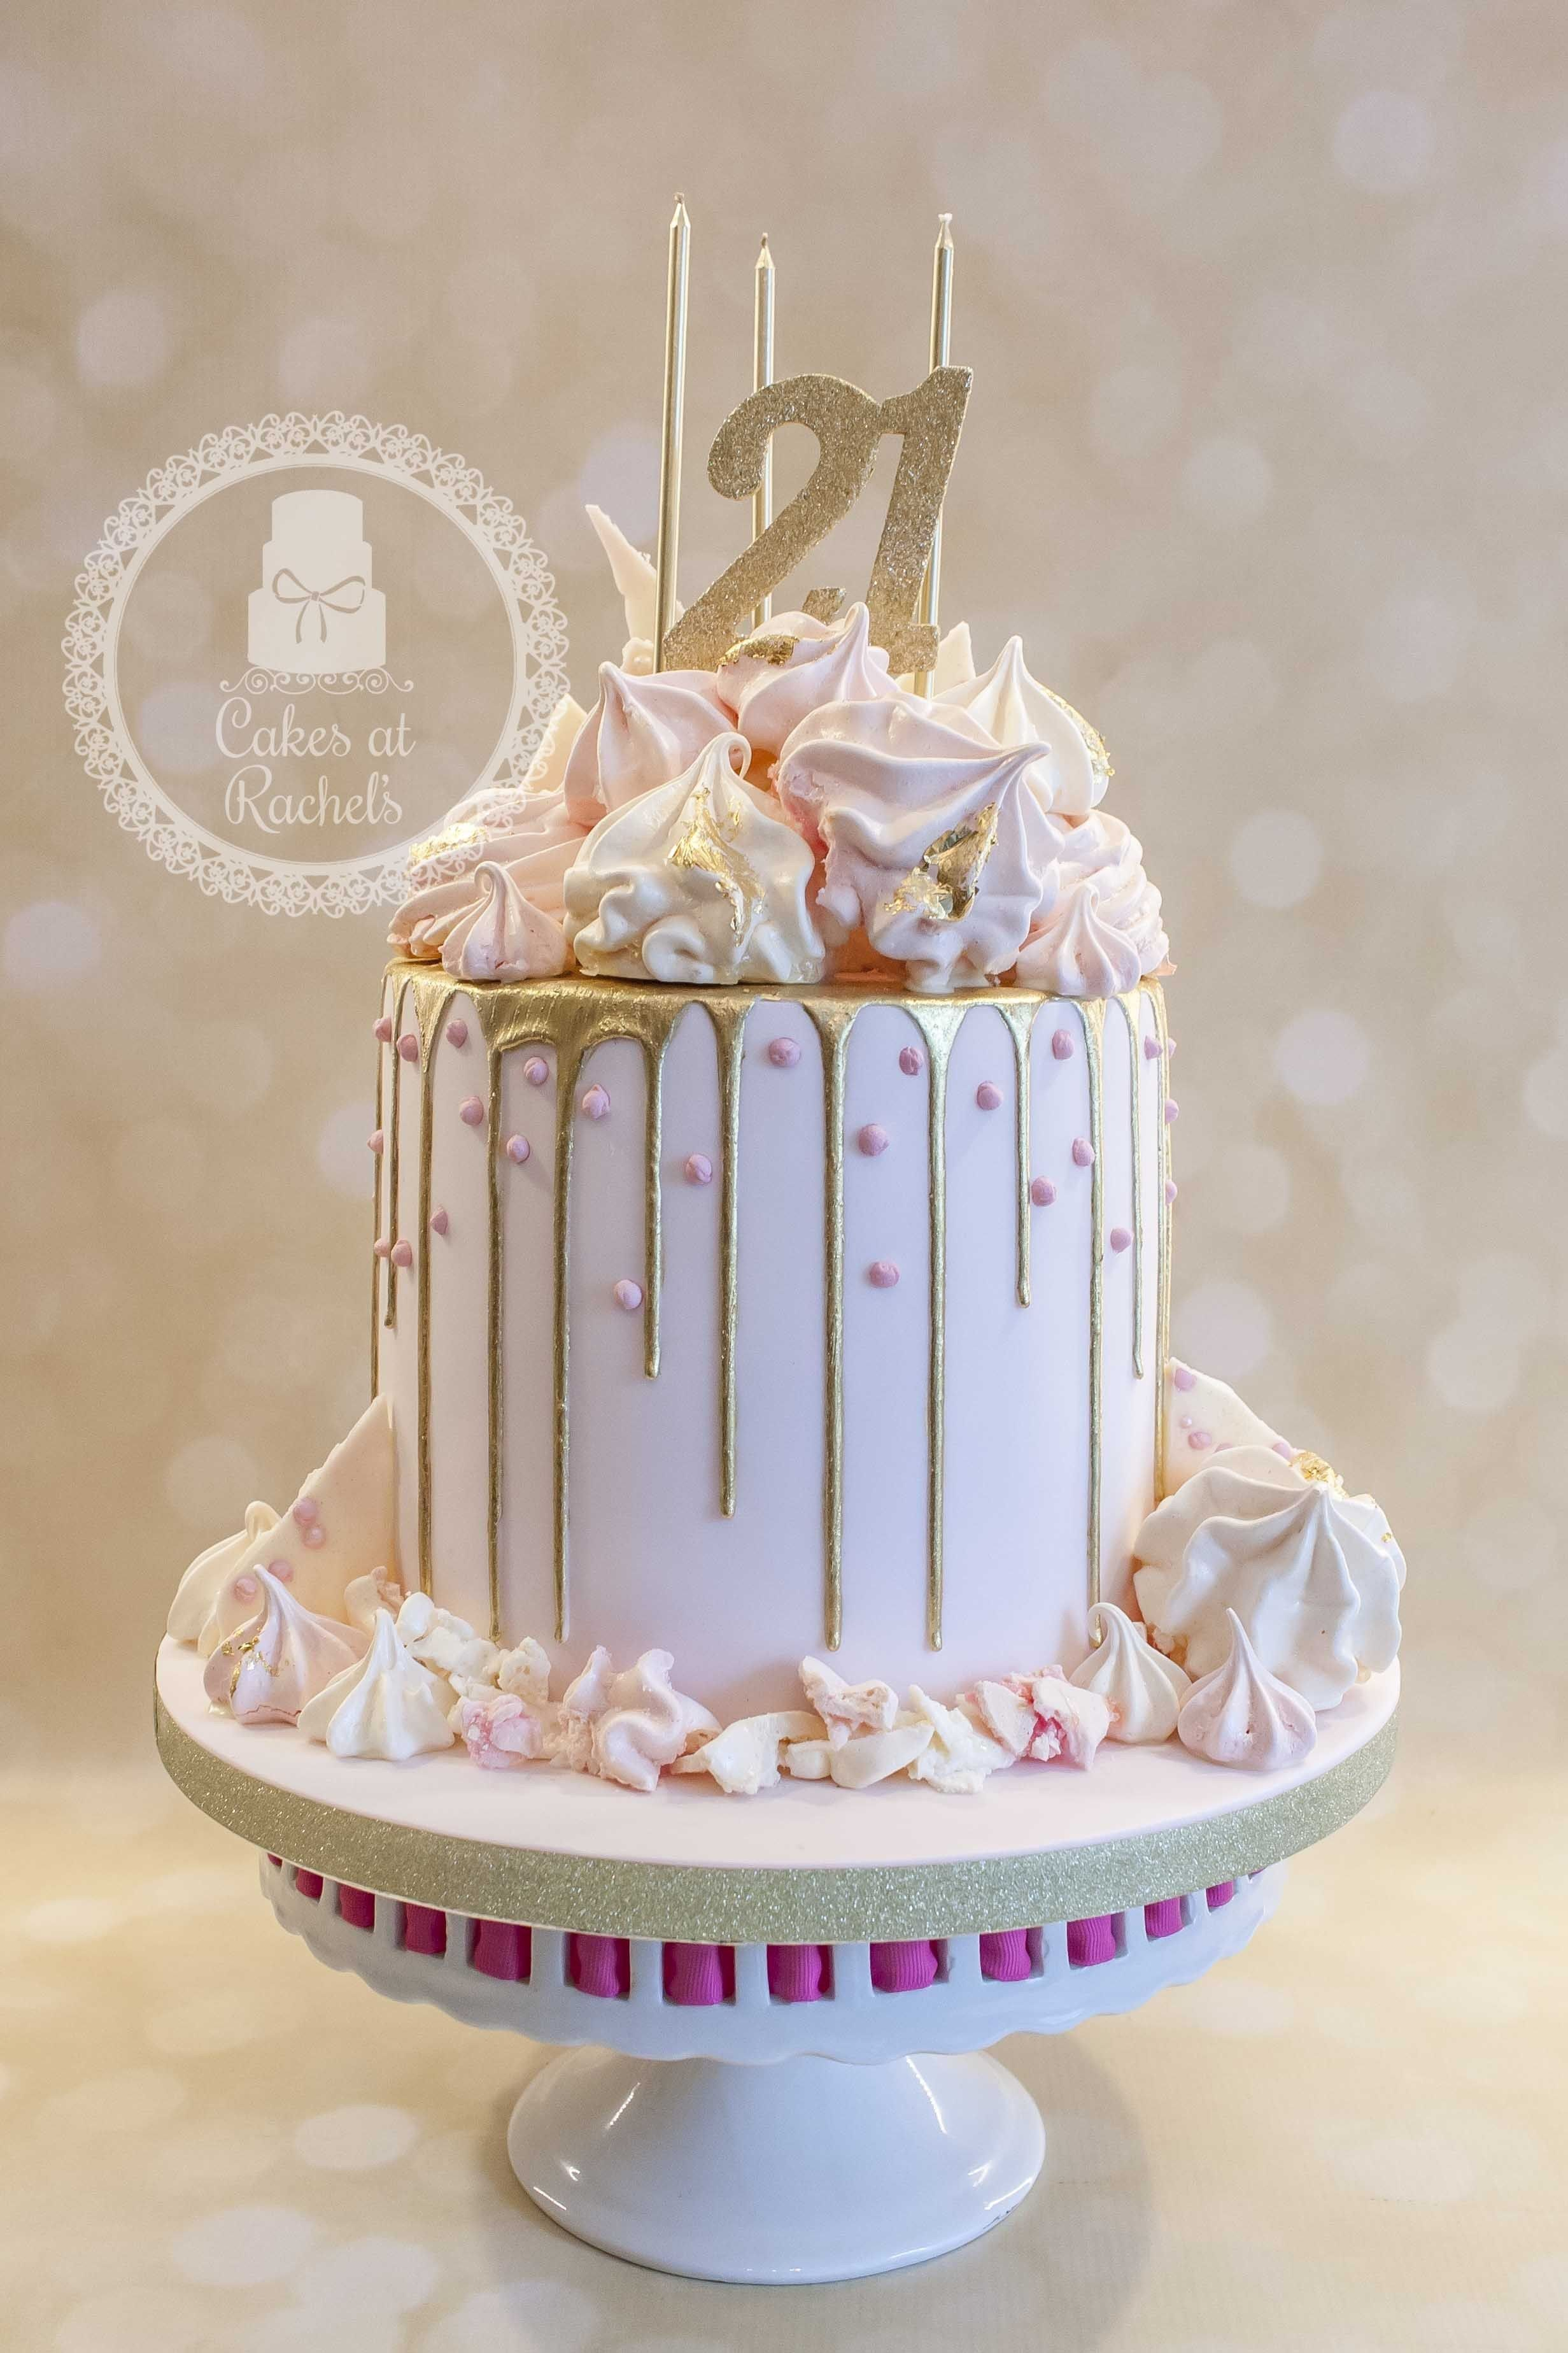 30 elegant picture of 21st birthday cakes for her 21st